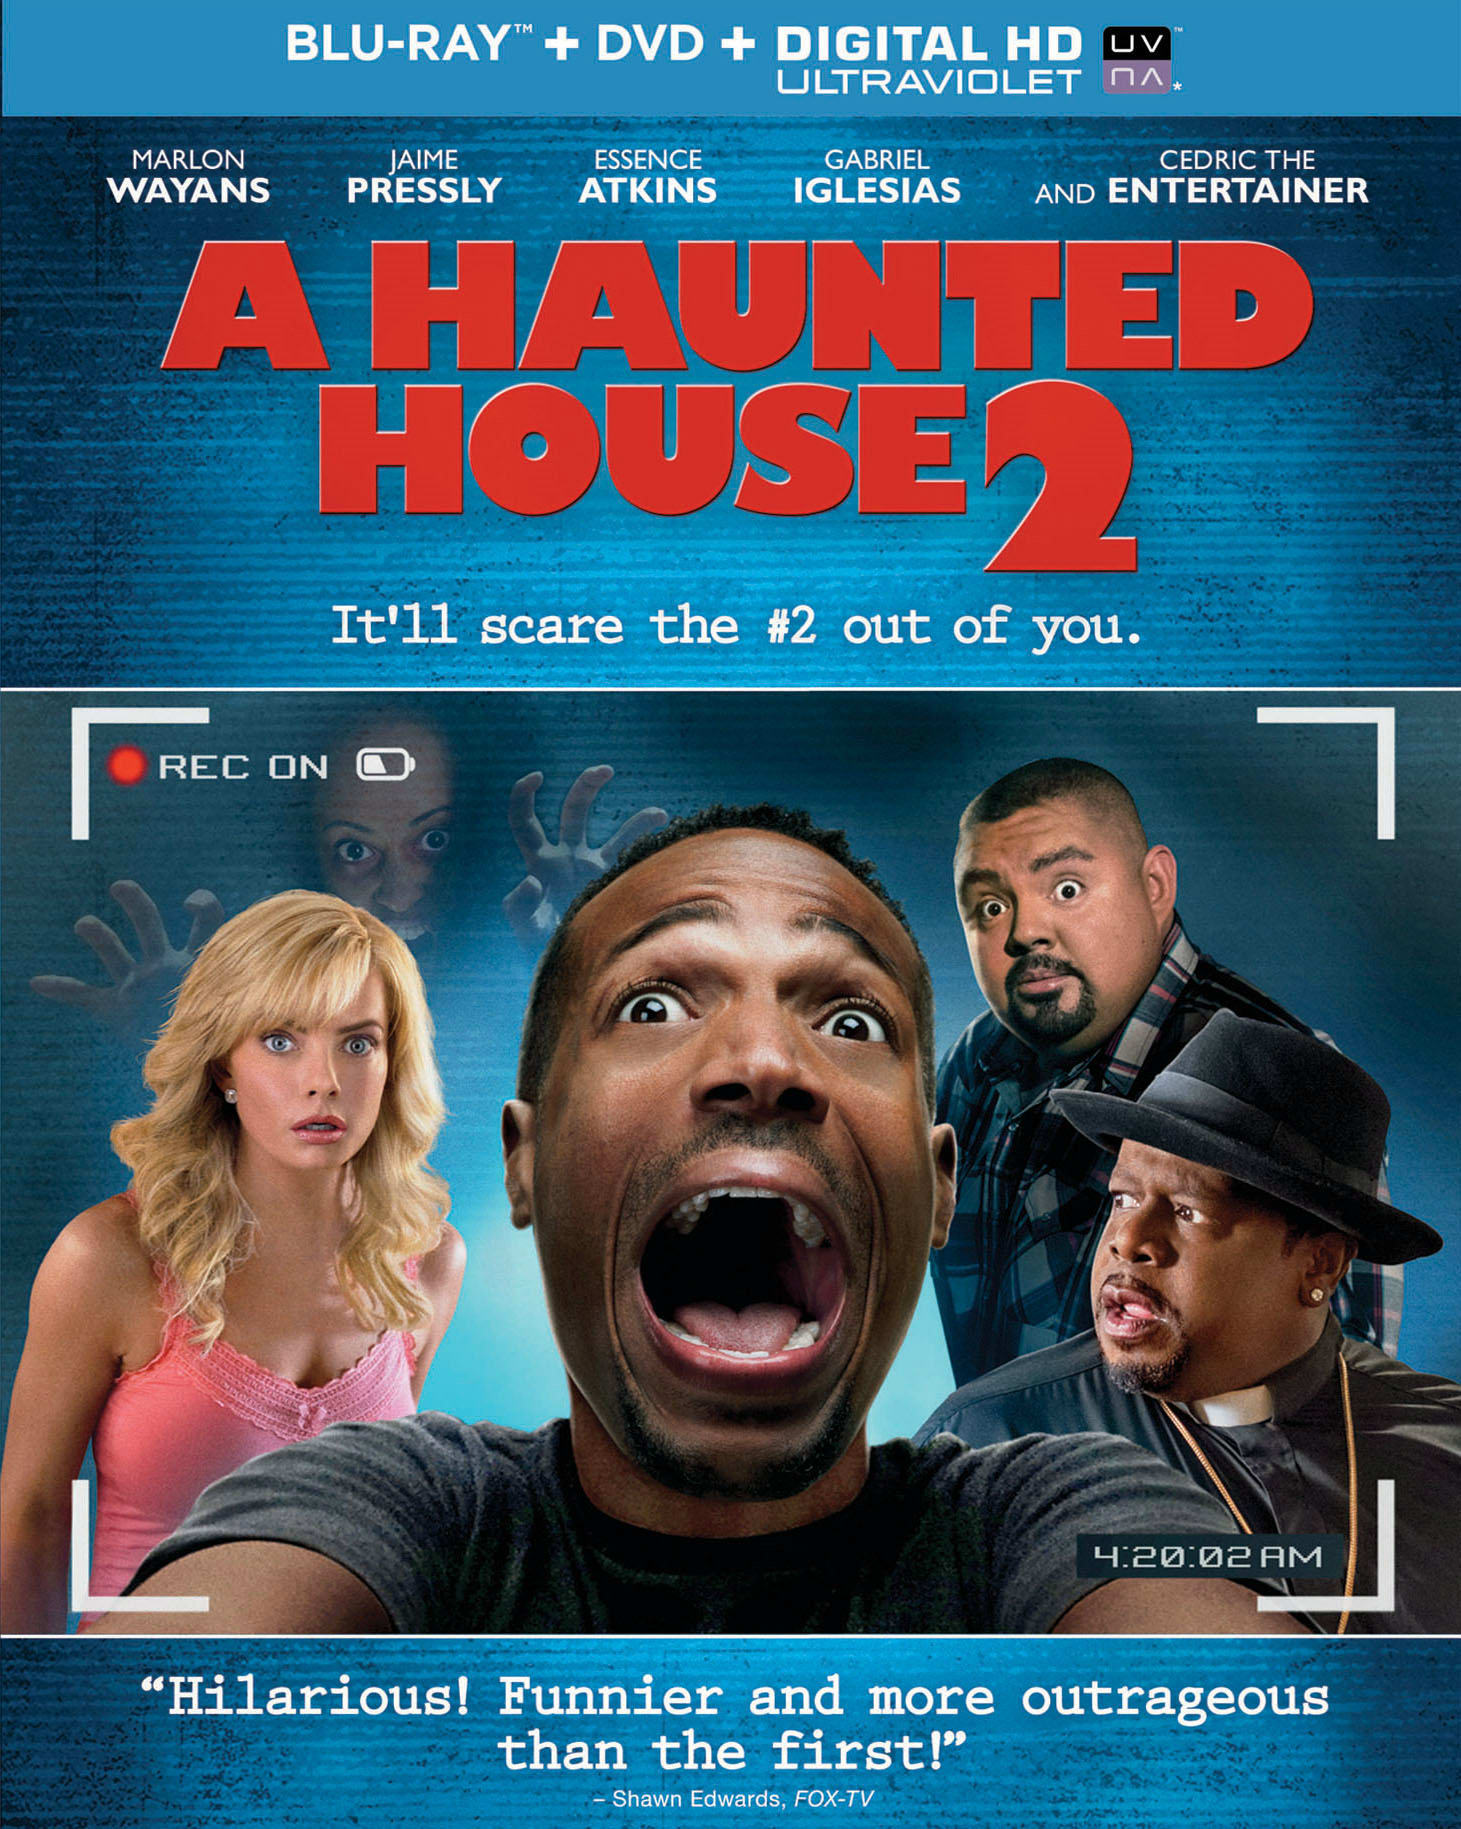 A Haunted House 2 (DVD + Digital + Ultraviolet) [Blu-ray]